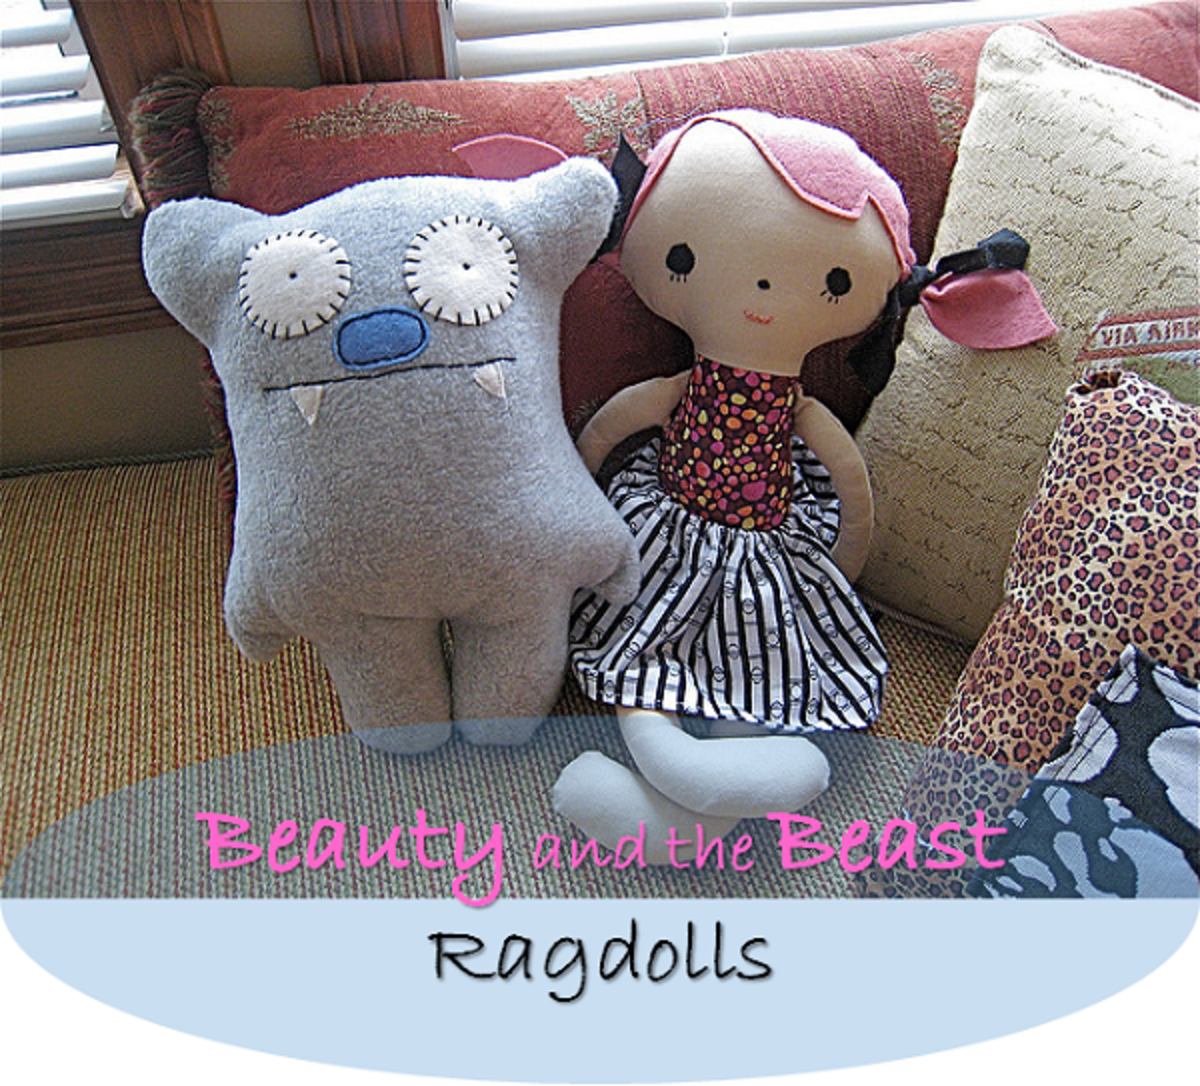 Rag dolls can come in all shapes and sizes. Here are two different types of soft dolls, Beauty and the Beast.